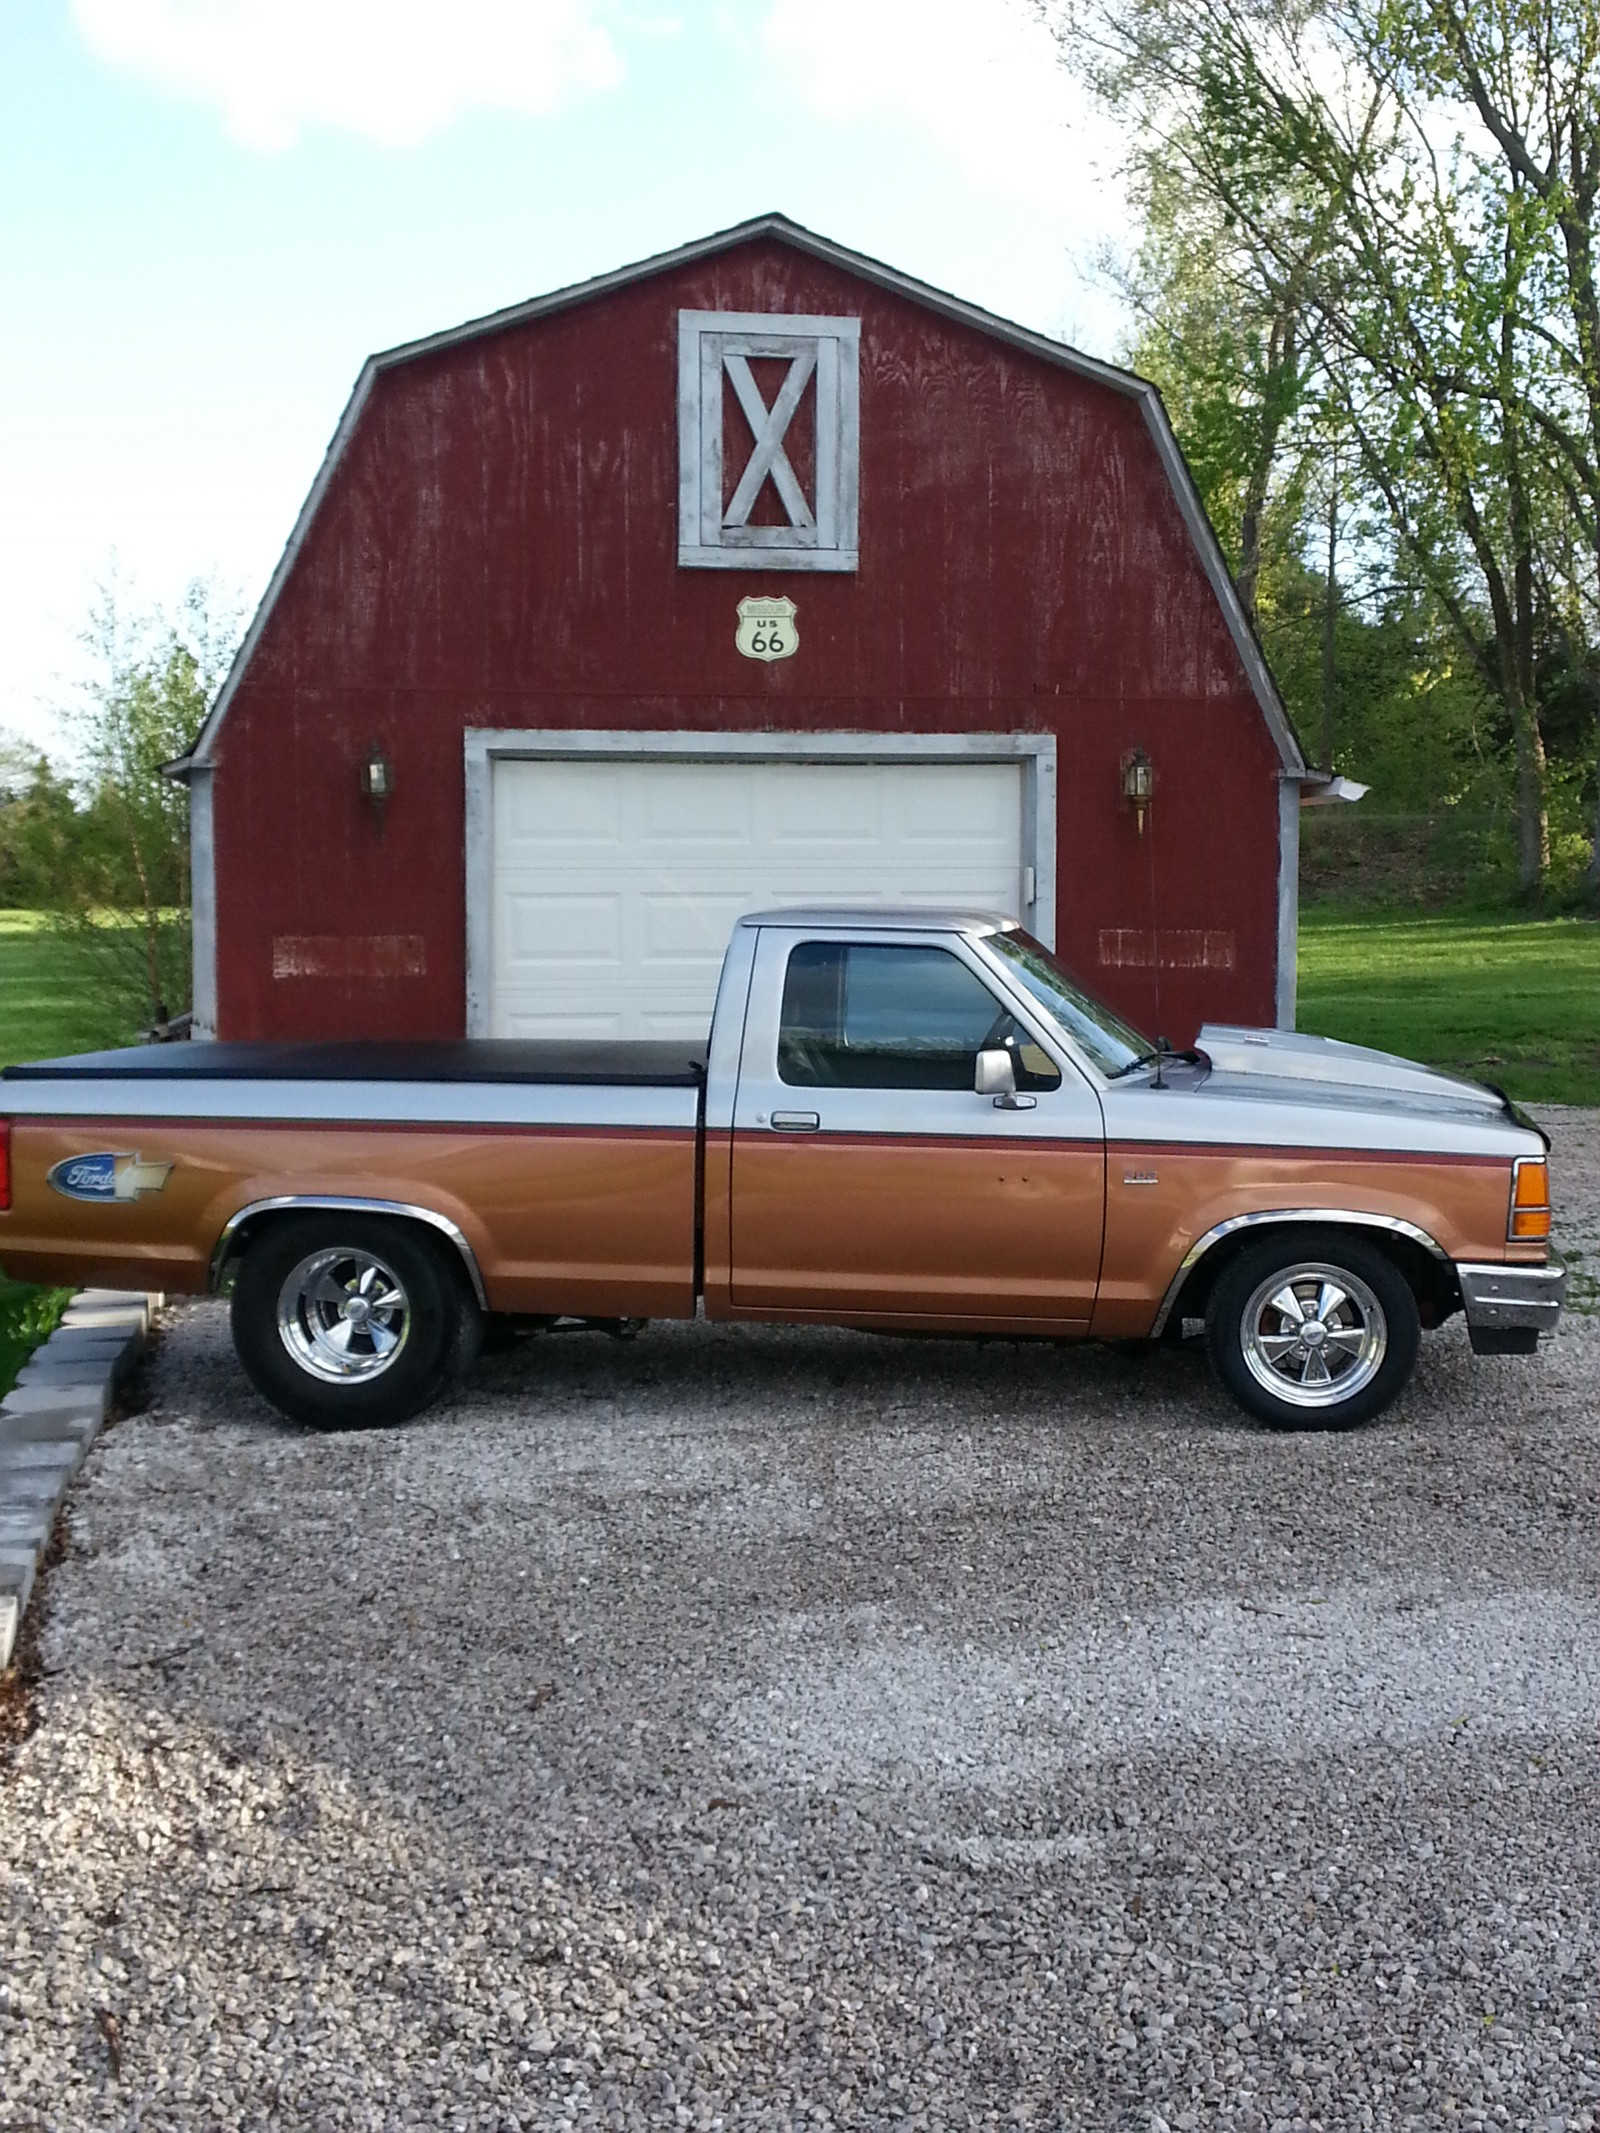 1992 GOLD/SILVER Ford Ranger XLT picture, mods, upgrades